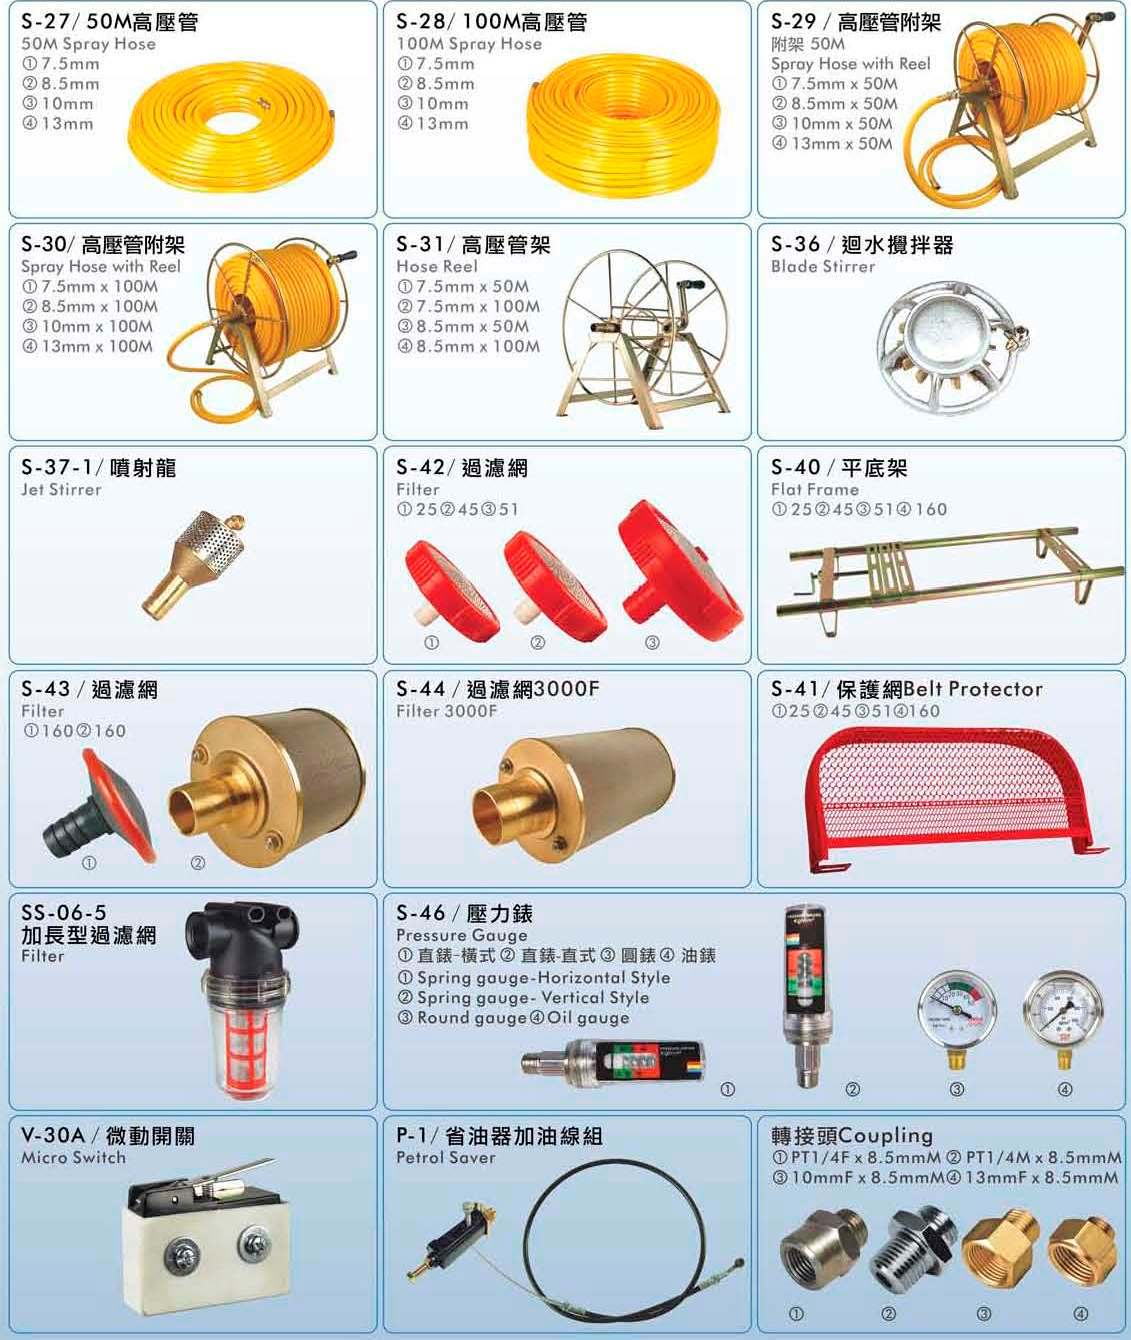 proimages/product/POWER_SPRAYER/accessory/Catalog_p11.jpg